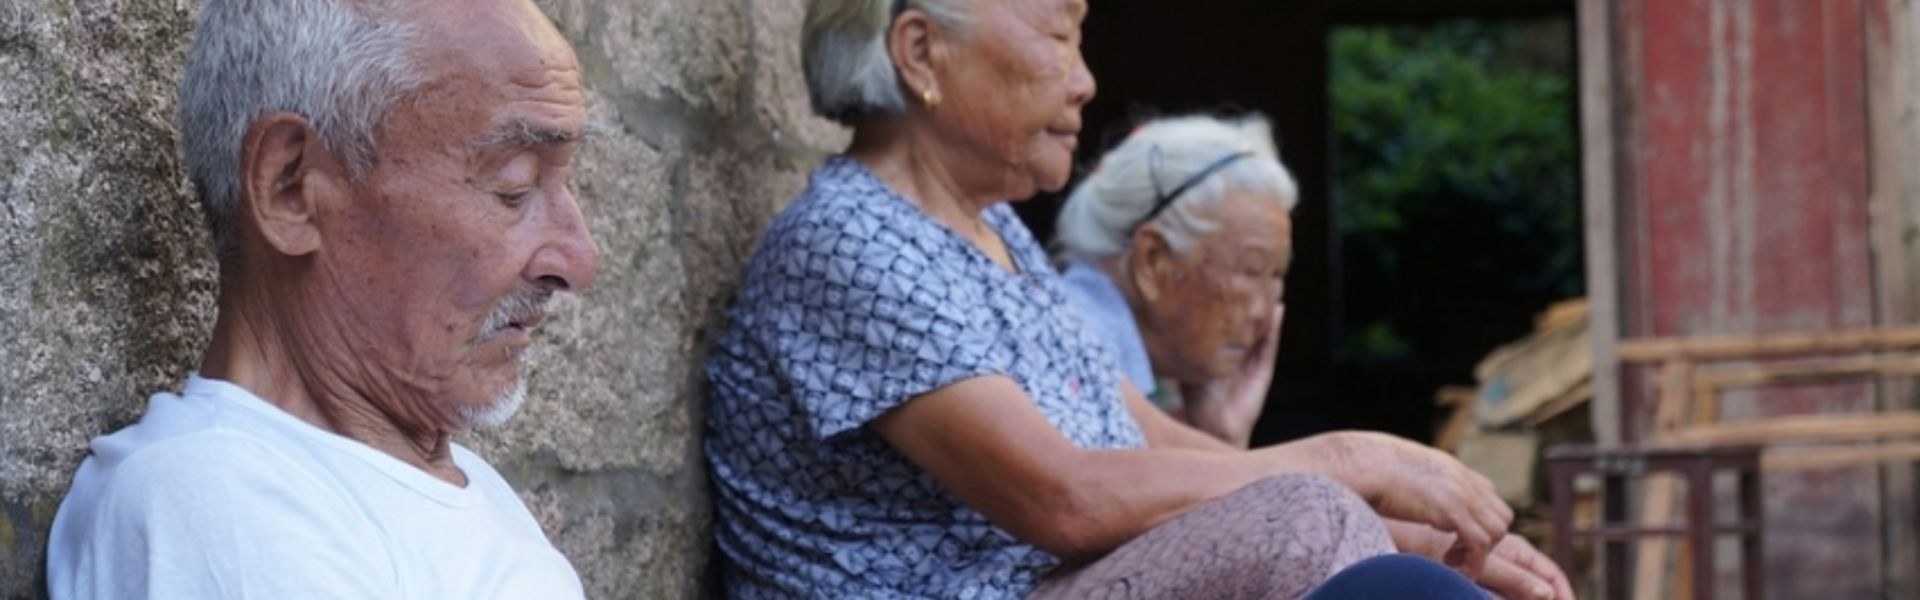 Depression and Loneliness- its importance in older adults